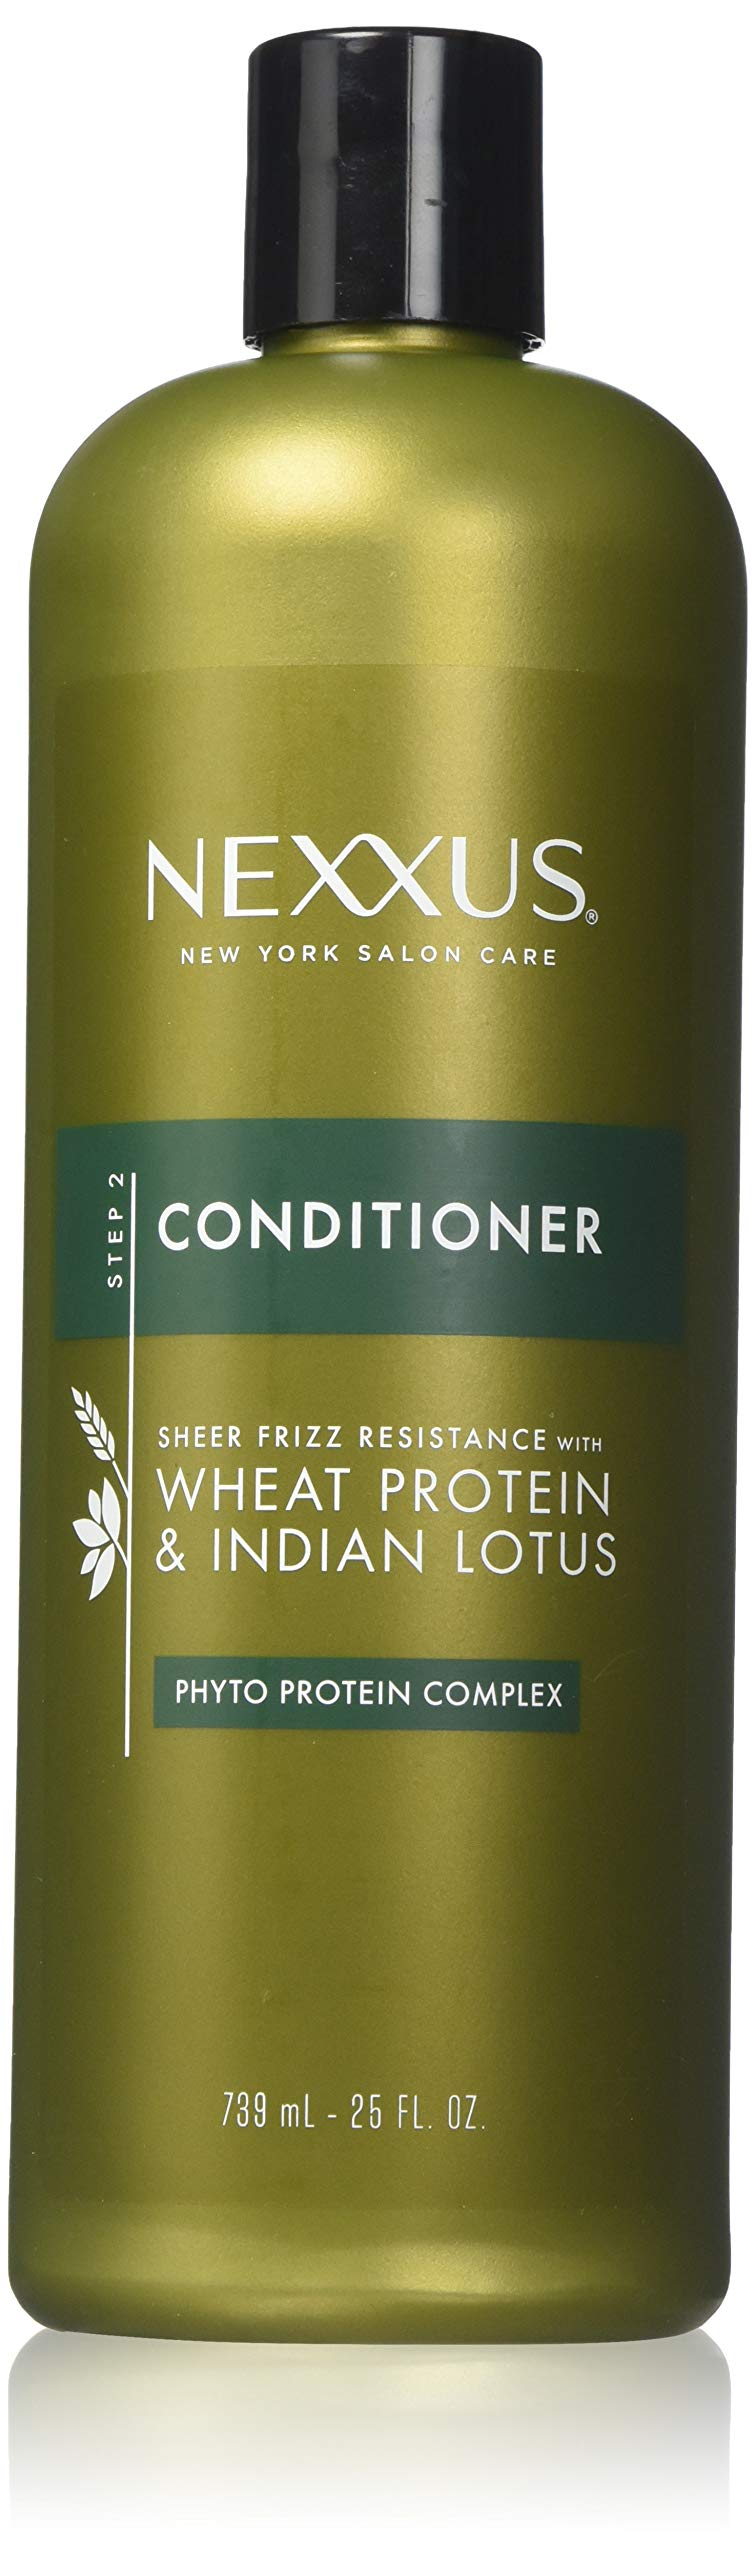 Nexxus Wheat Protein & Indian Lotus Phyto Protein Complex Conditioner 739ml